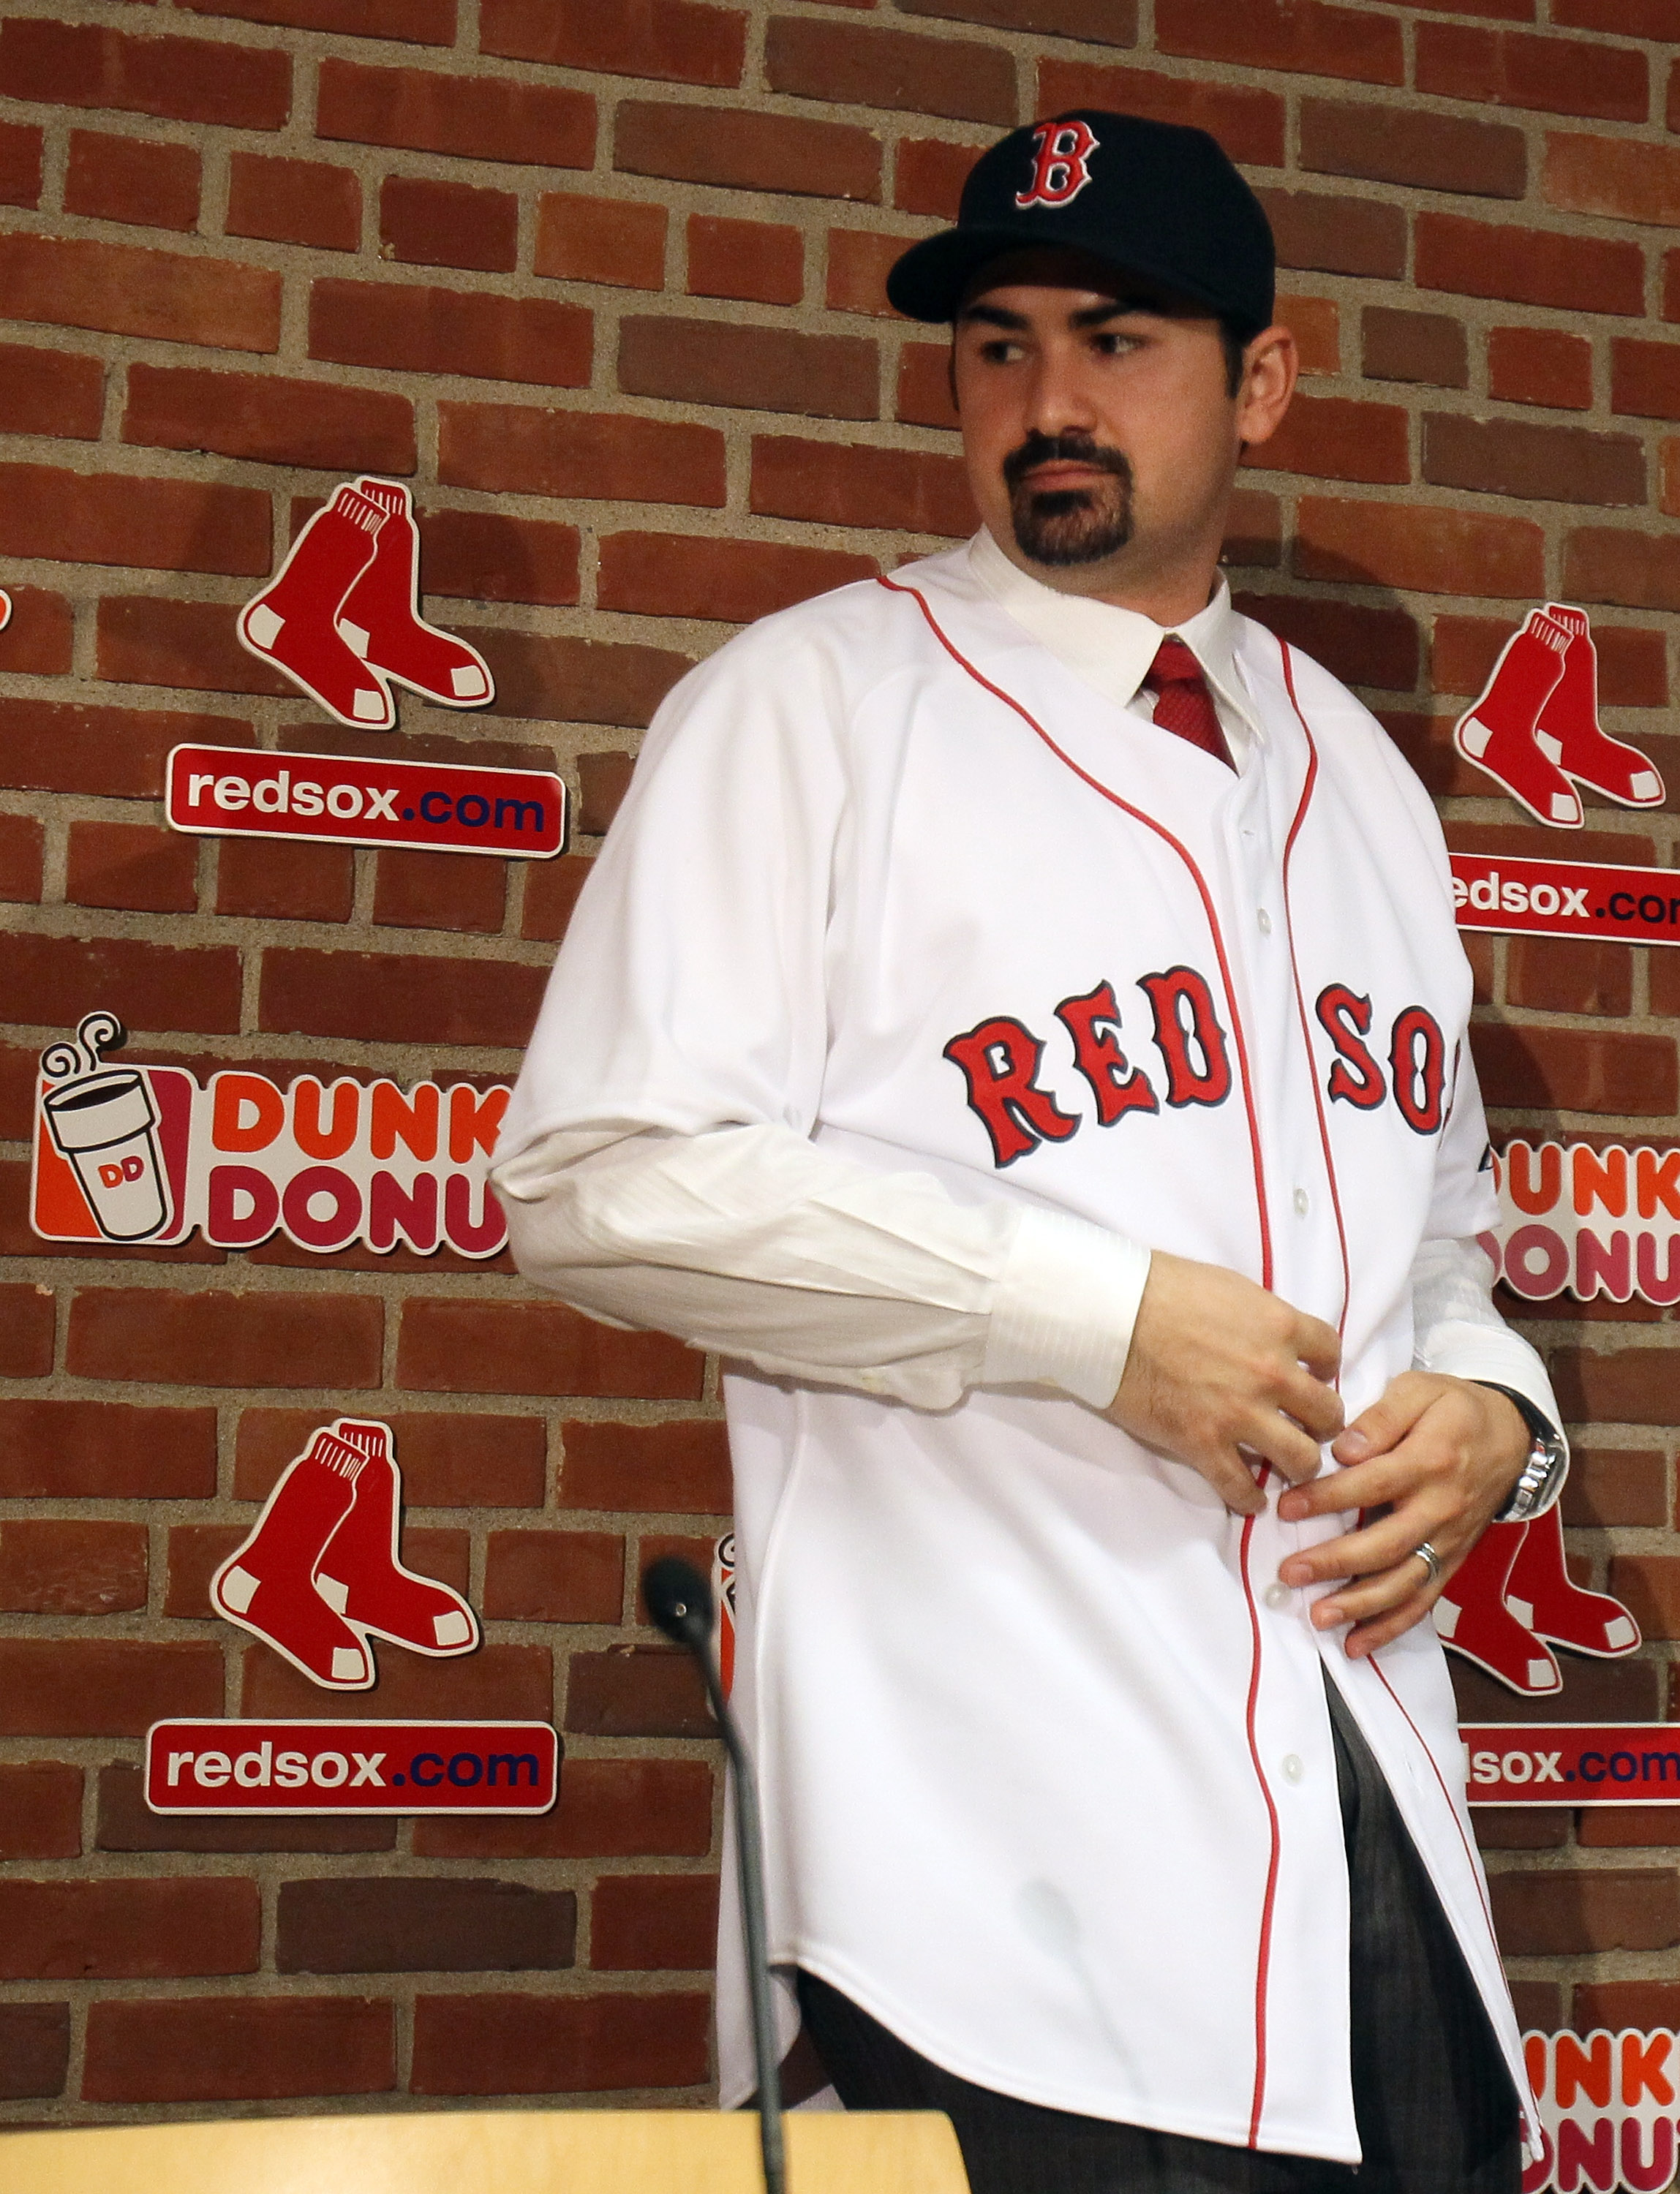 BOSTON, MA - DECEMBER 06:  Adrian Gonzalez stands after a press conference to announce his signing with the Boston Red Sox on December 6,  2010 at the Fenway Park in Boston, Massachusetts.  (Photo by Elsa/Getty Images)